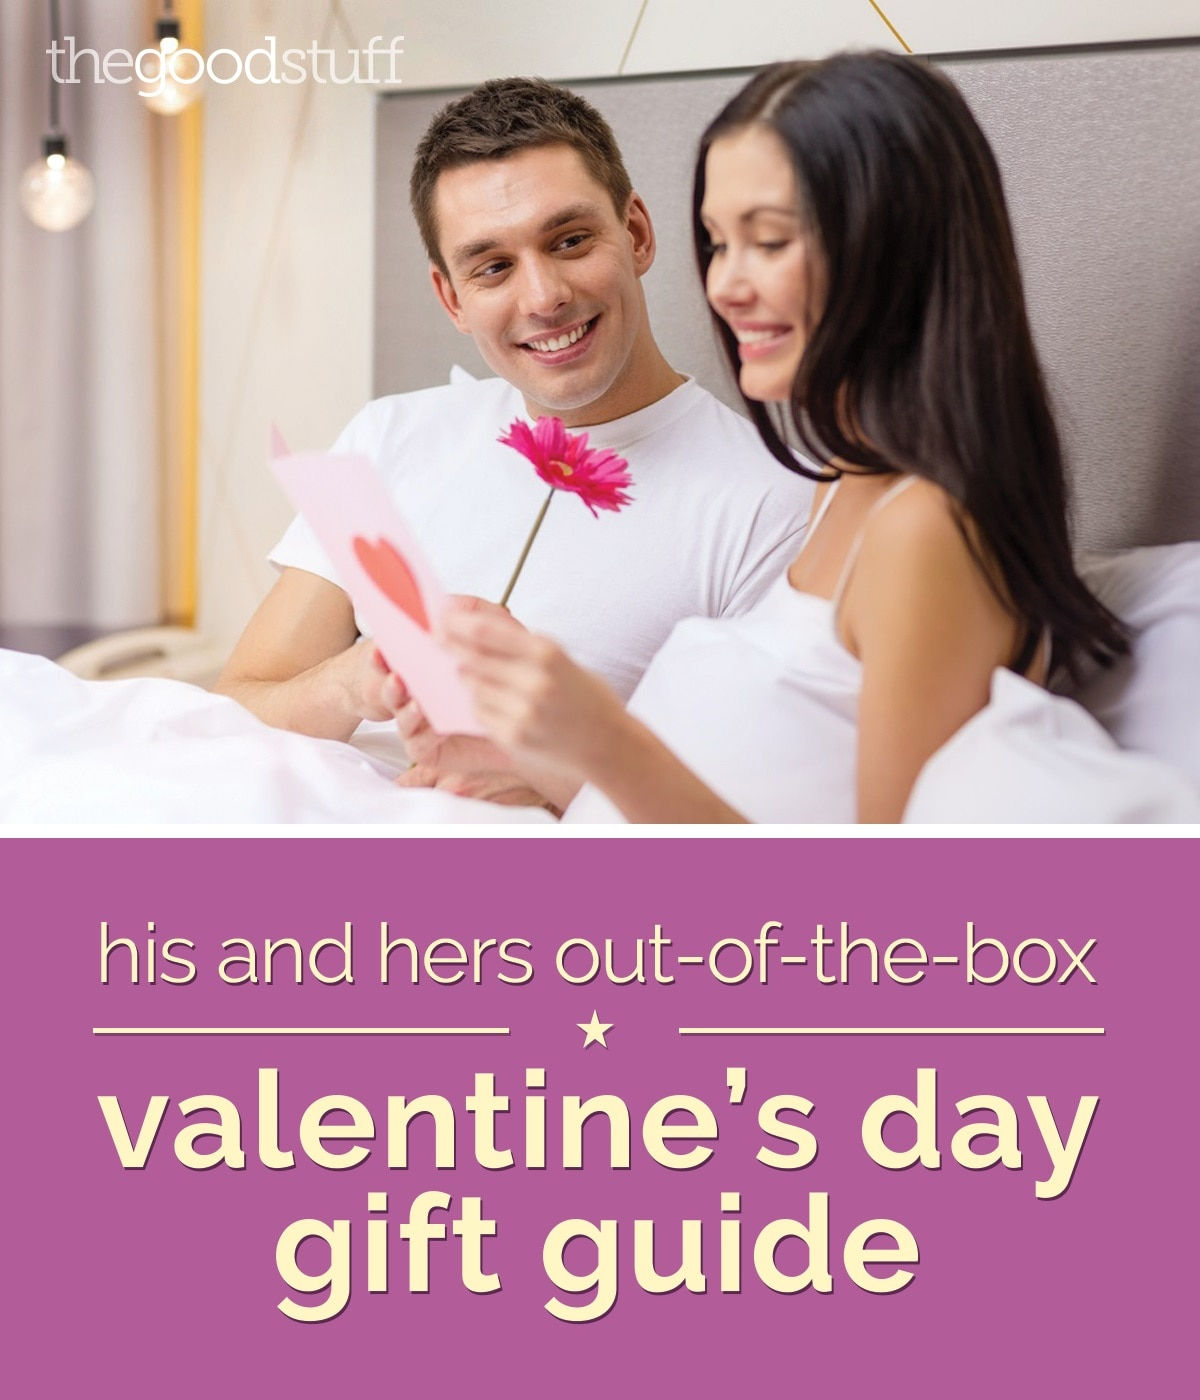 style-valentines-gift-guide